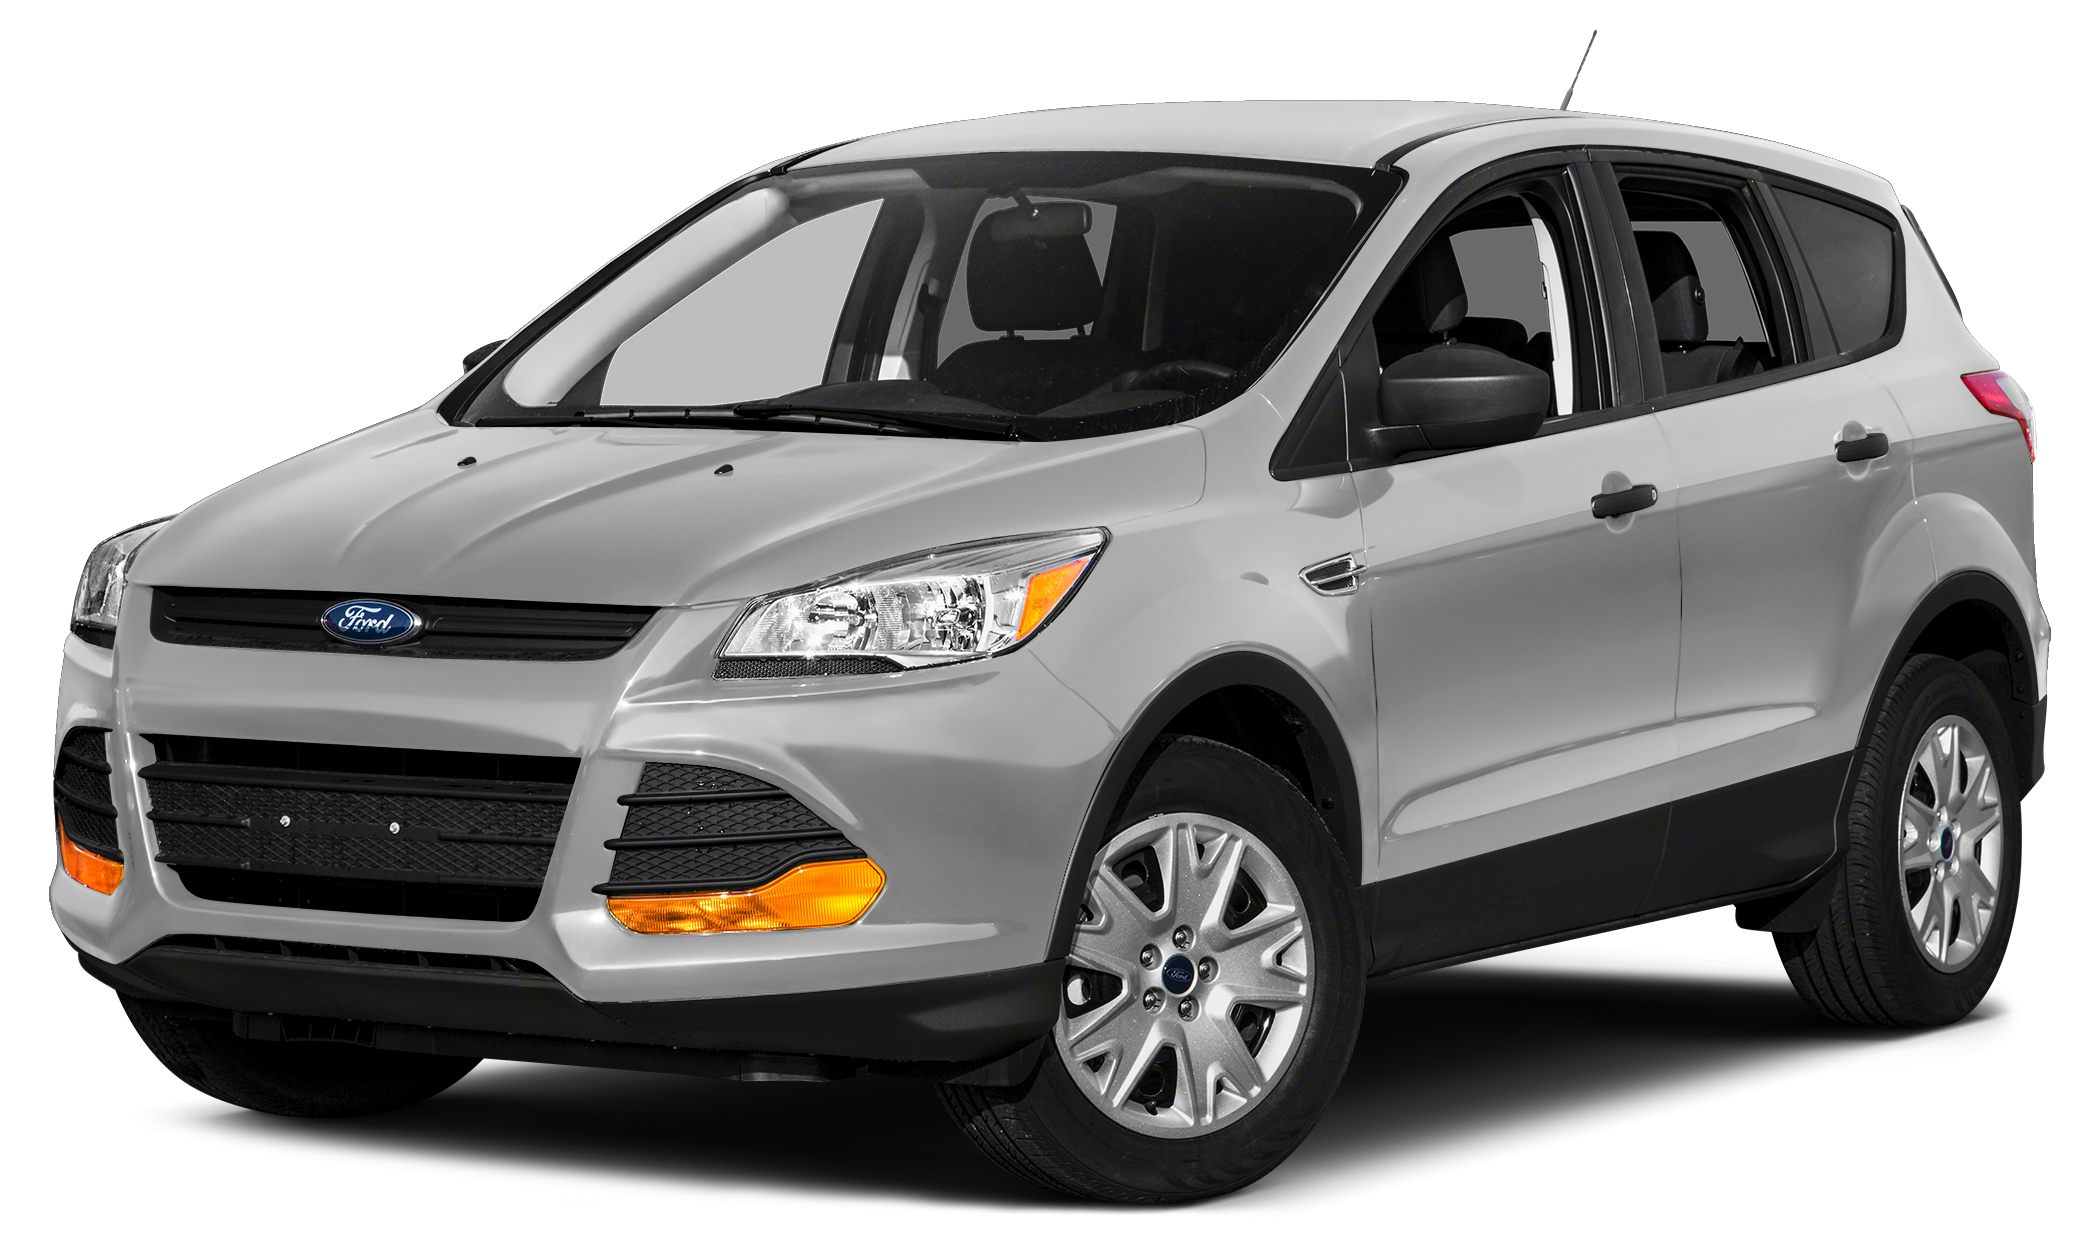 2016 Ford Escape Titanium Our Cost reflects all applicable manufacturer rebates andor incentives